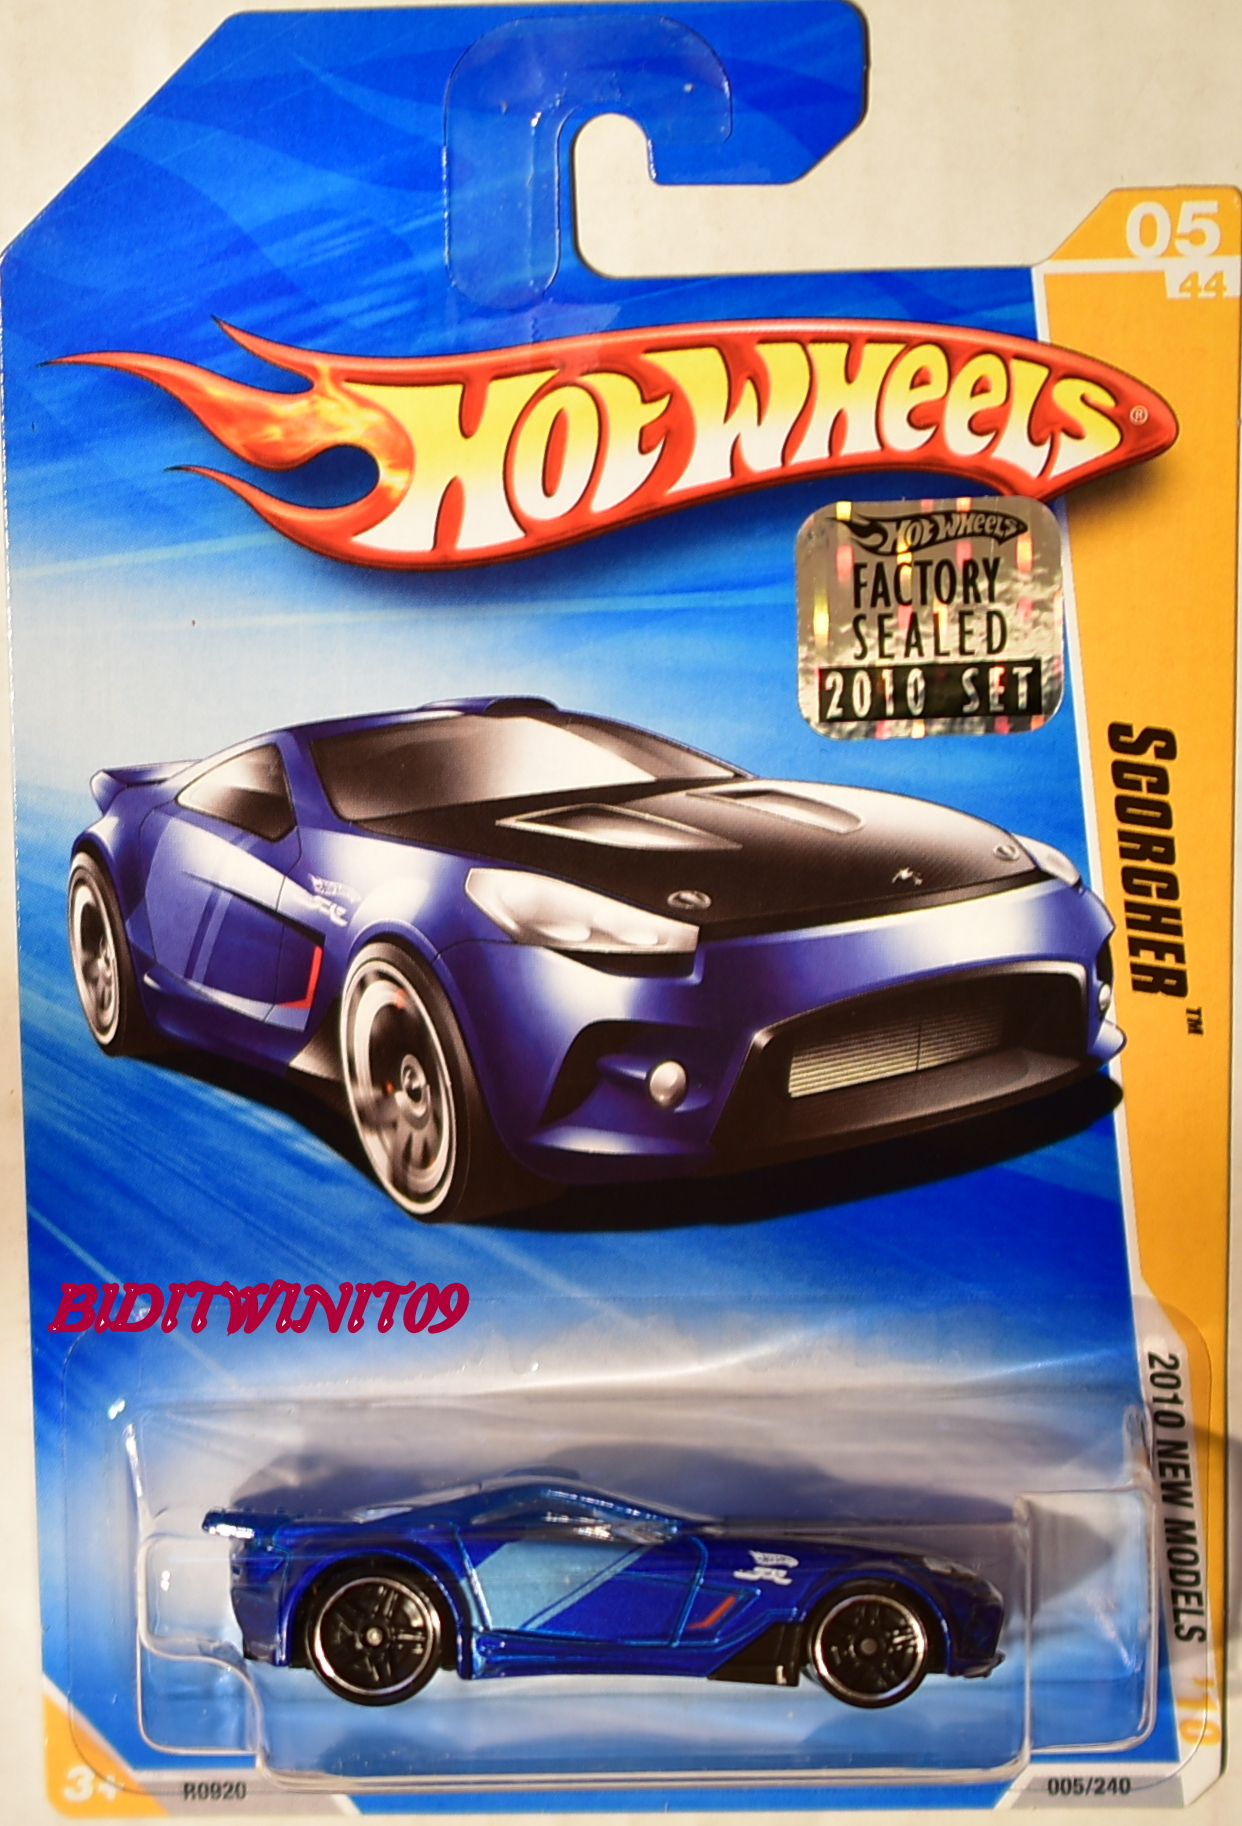 HOT WHEELS 2010 NEW MODELS SCORCHER #05/44 BLUE FACTORY SEALED E+